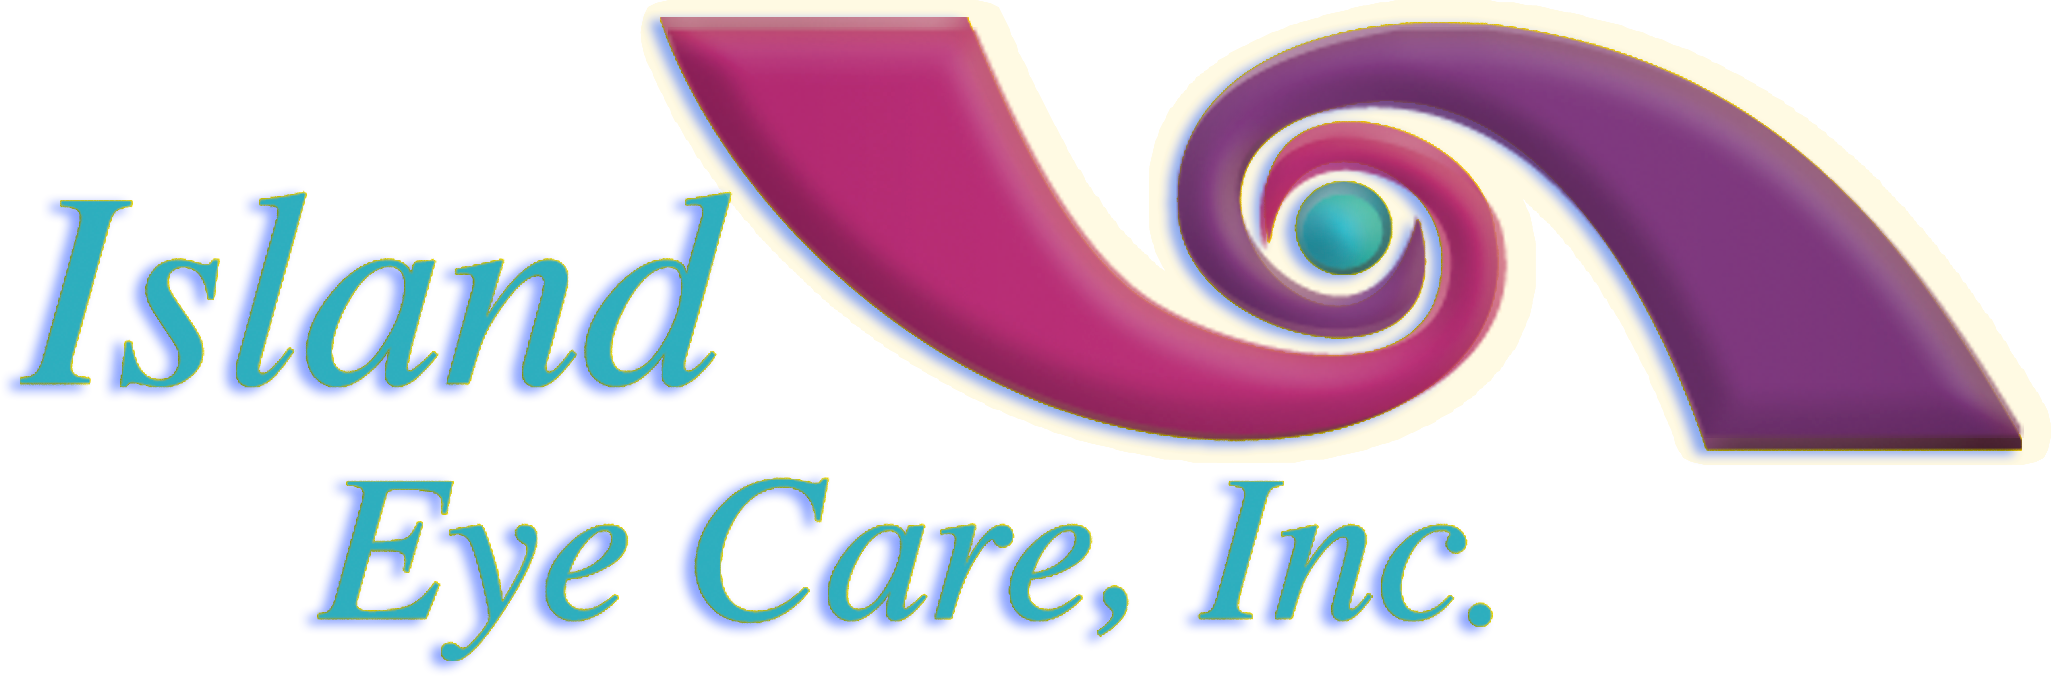 Island Eye Care, Inc.